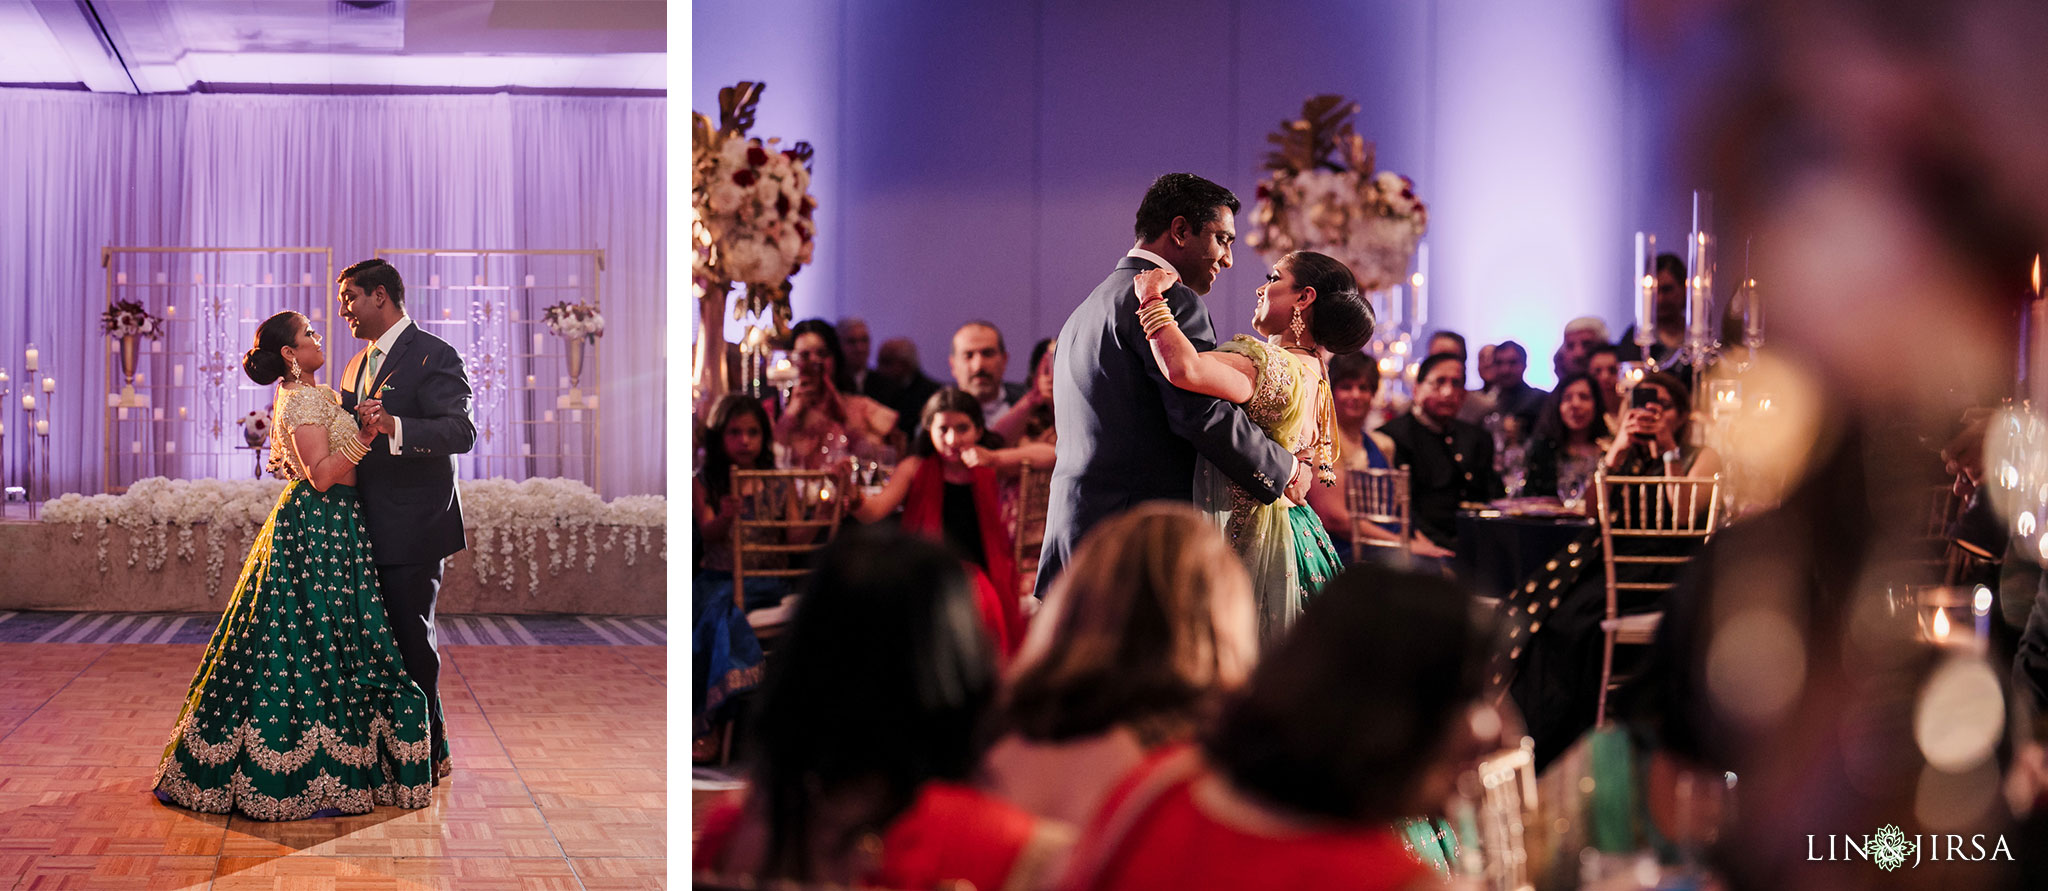 041 marriott santa clara indian wedding reception photography